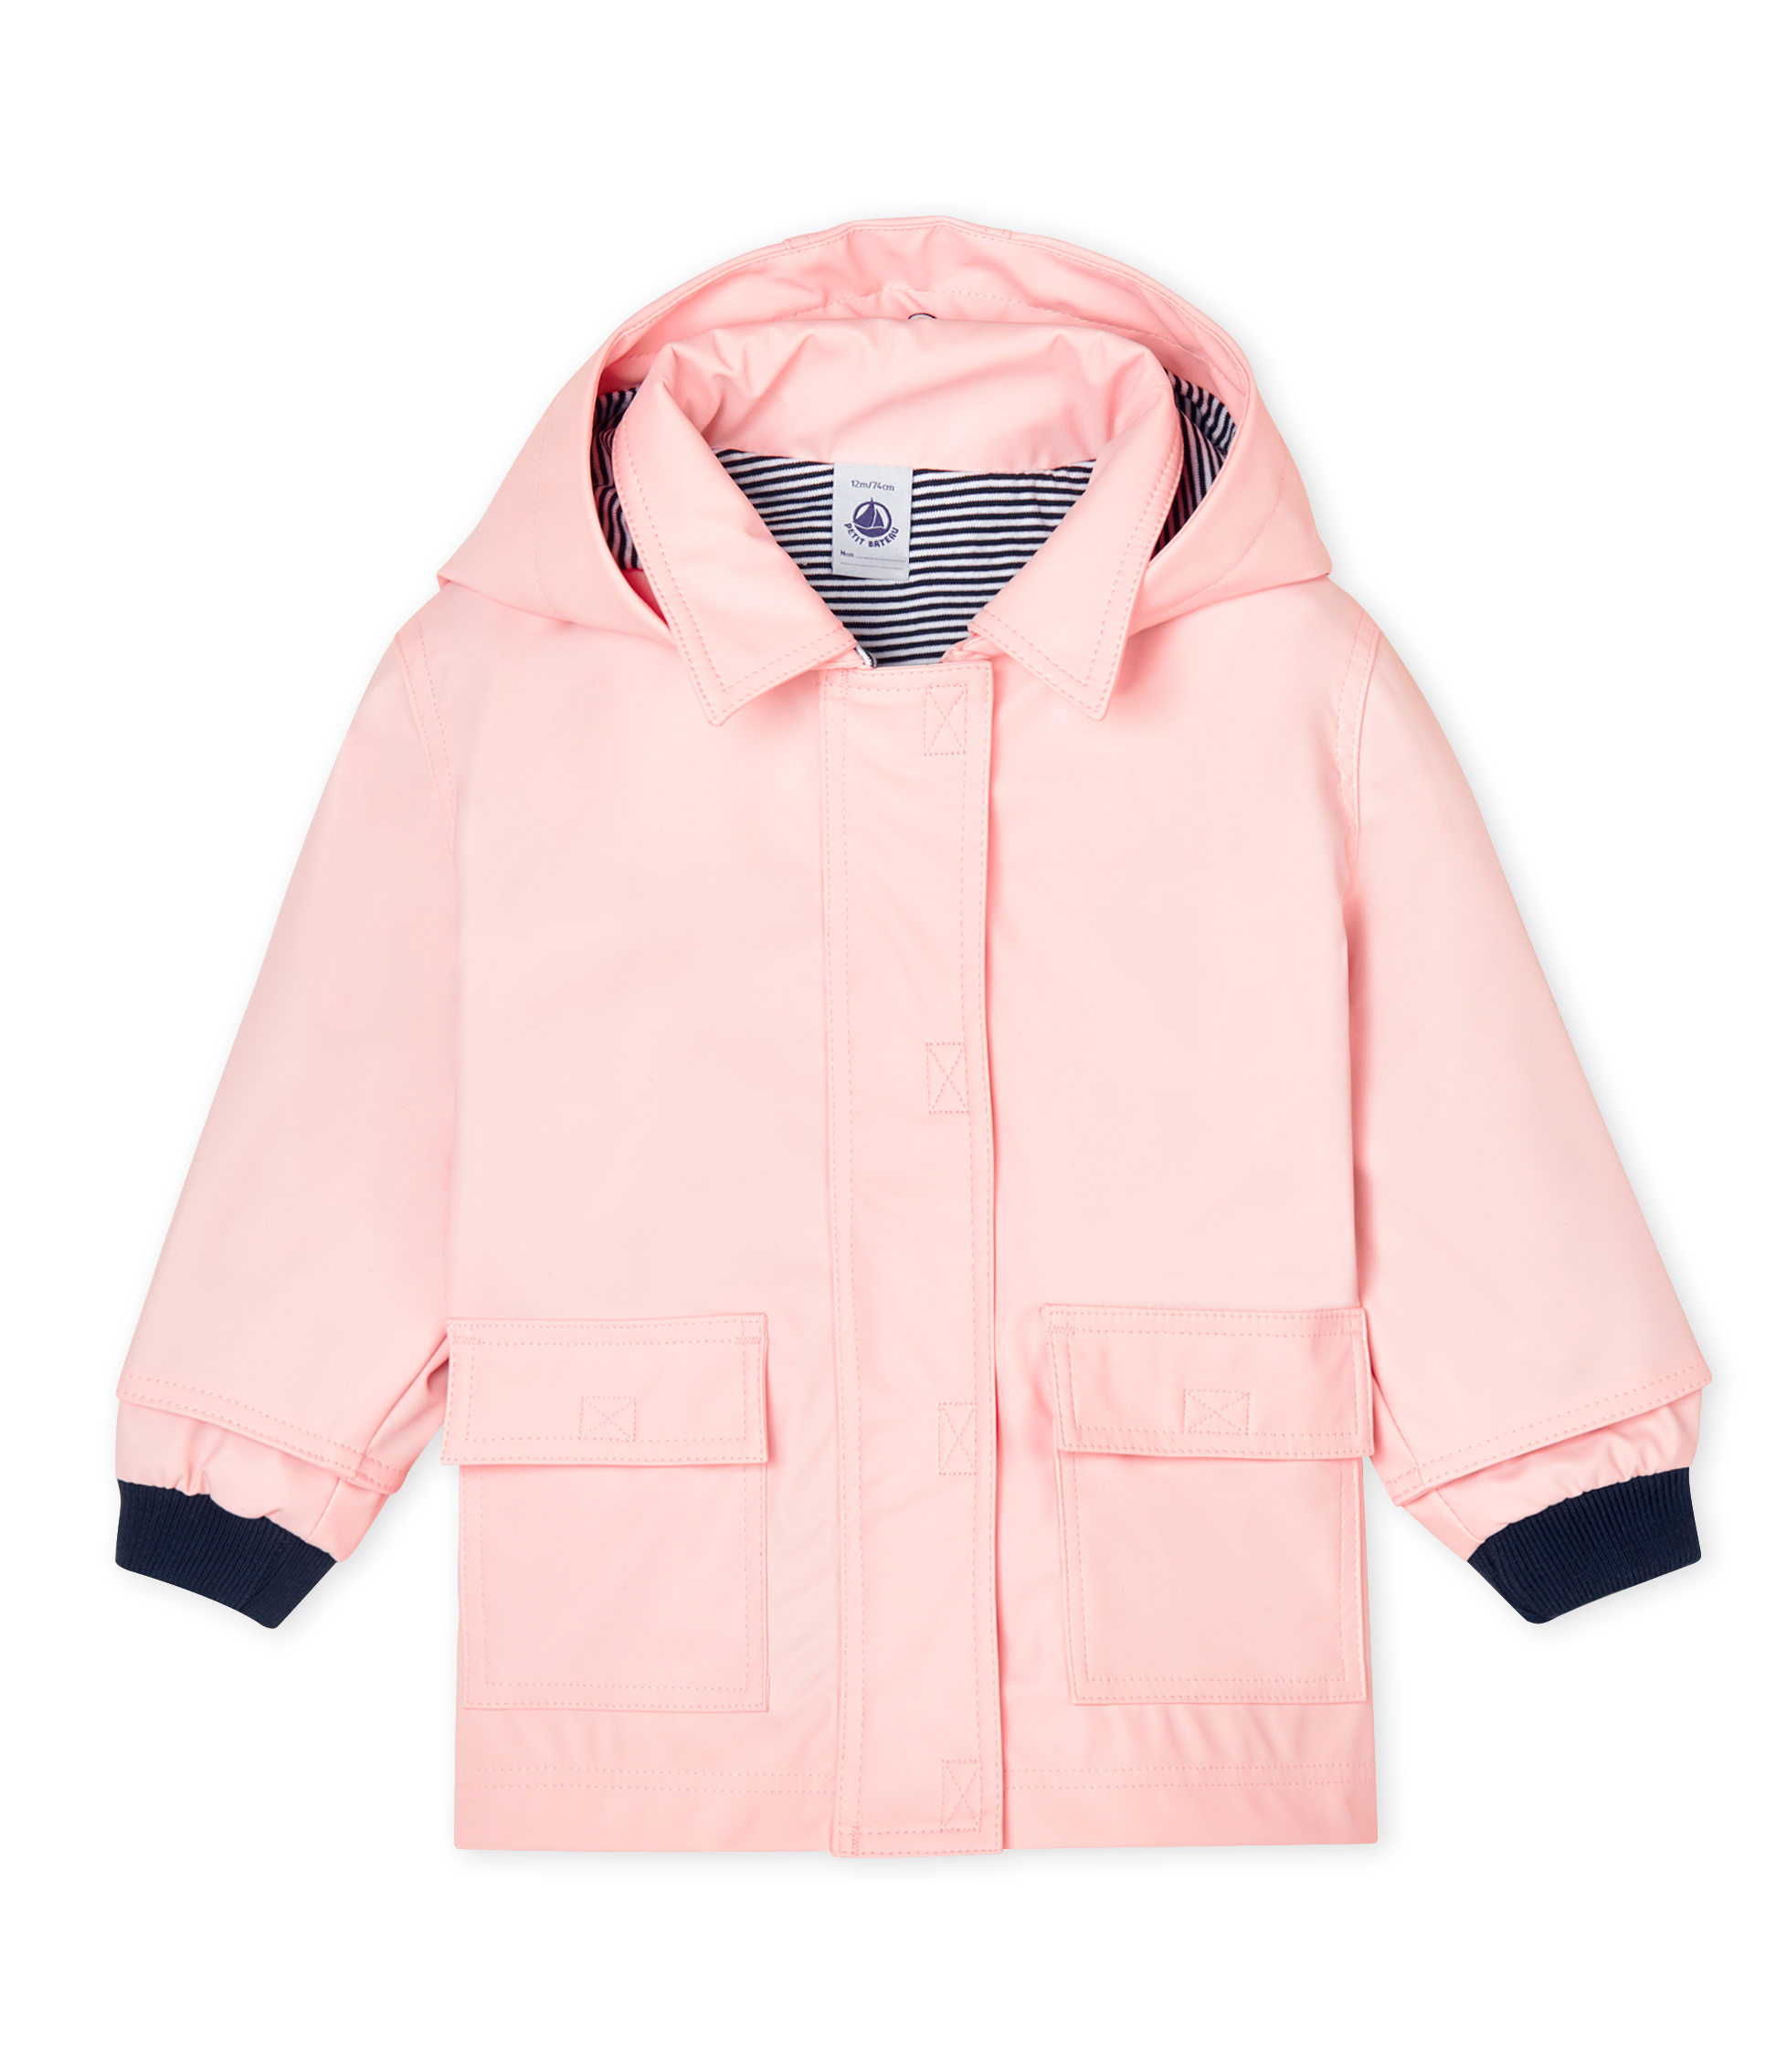 Iconic waxed coat for baby girls